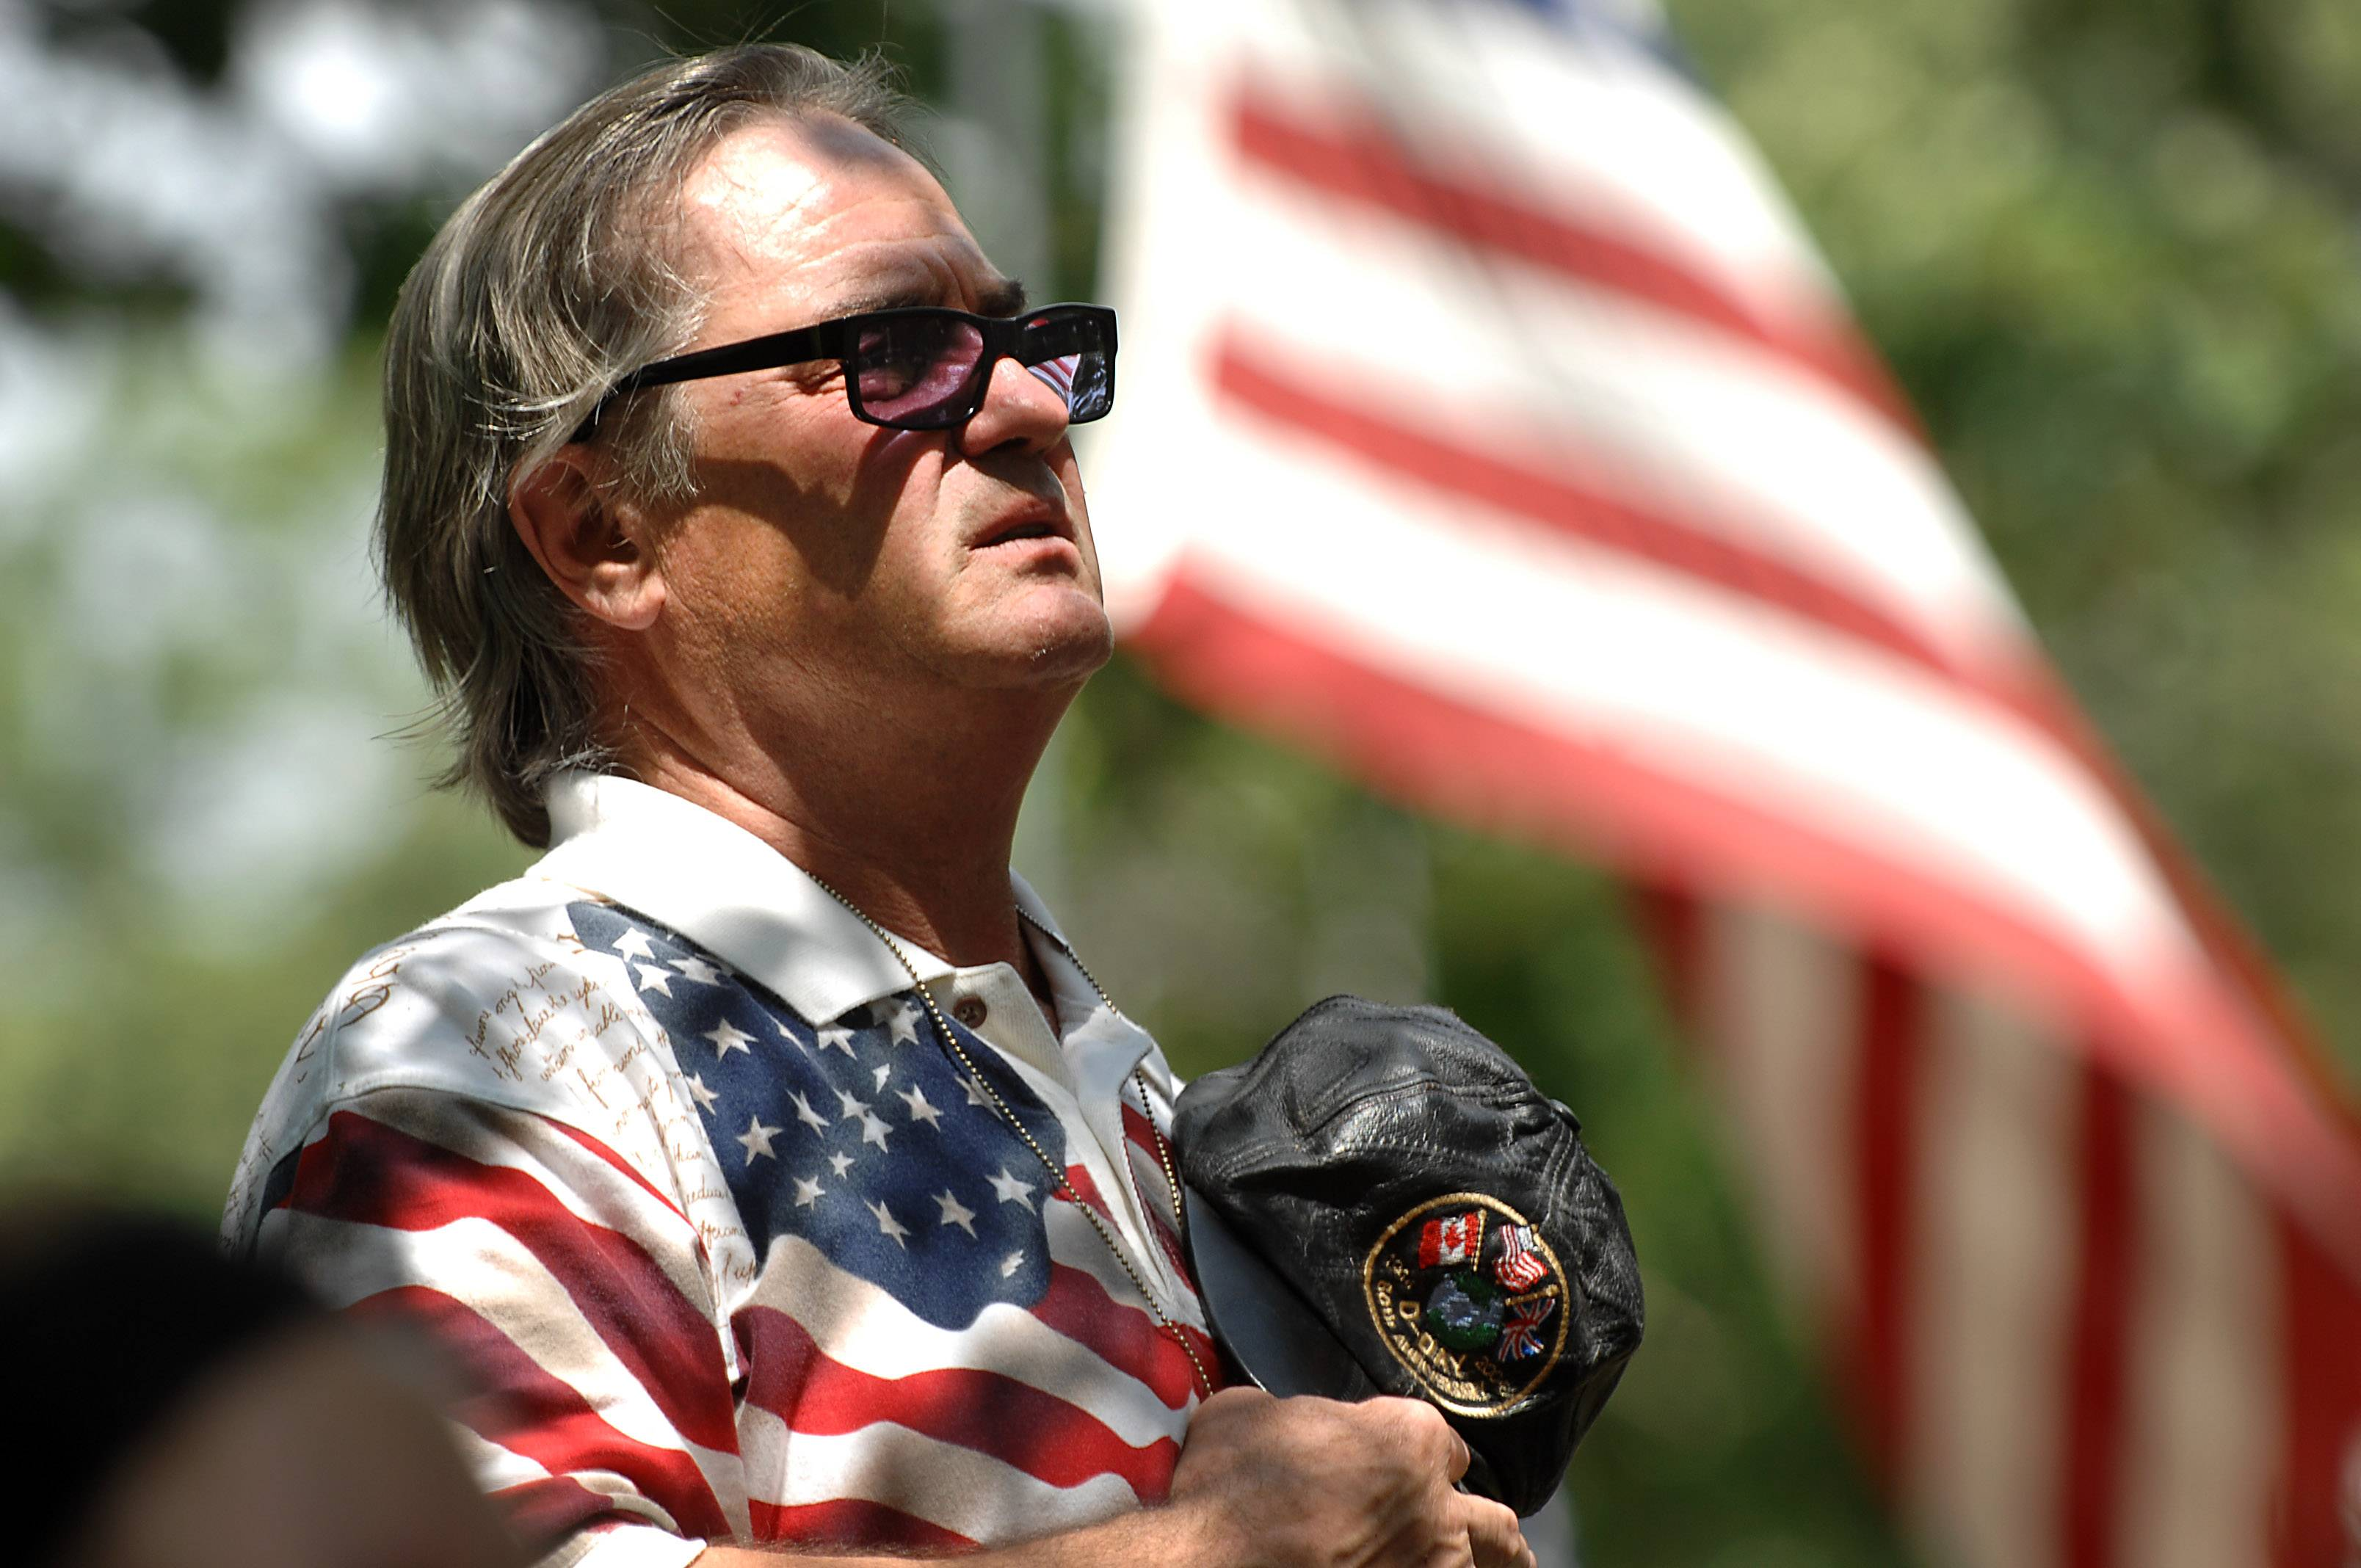 Ralph Johnston Jr. of South Elgin says the Pledge of Allegiance Monday while bearing his father's hat and dog tags at the Memorial Day service at the Bluff City Cemetery in Elgin. His father served in France during World War II.